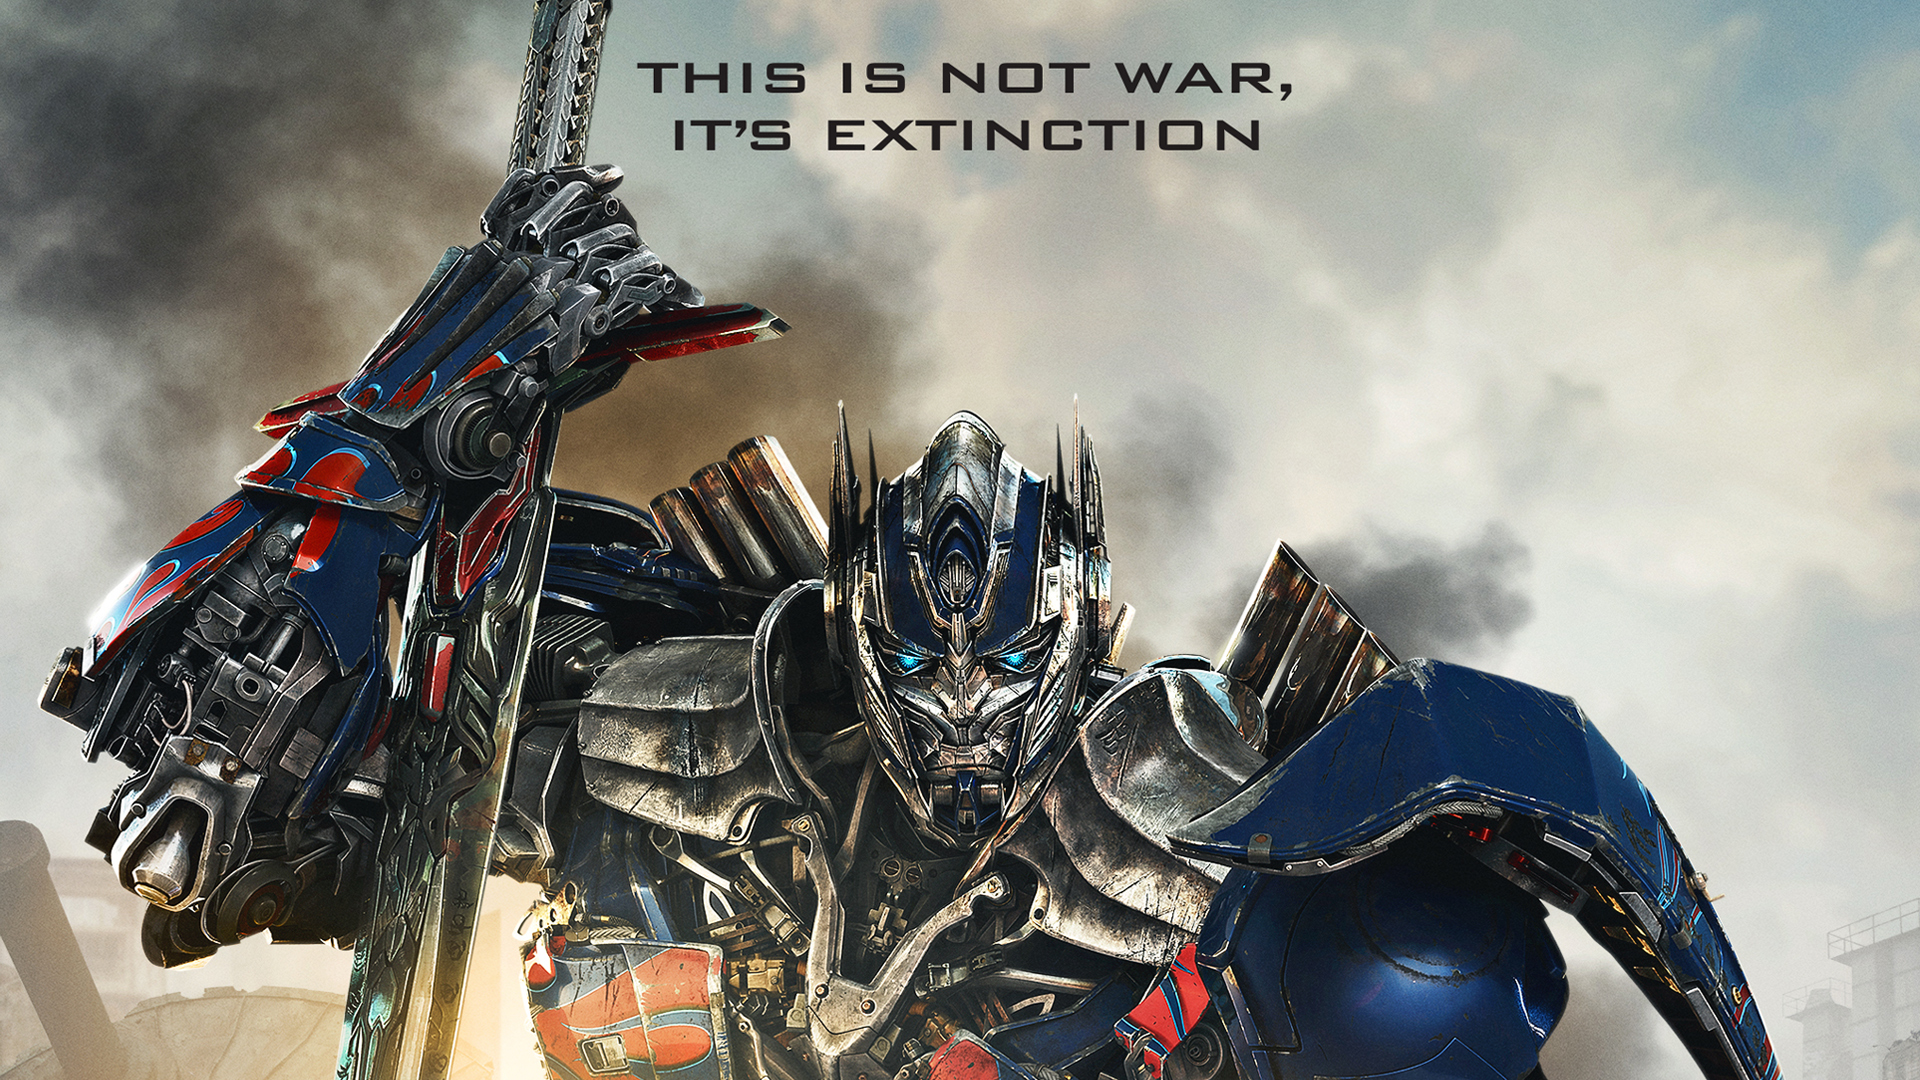 Free Download Optimus Transformers 4 Hd Wallpaper 1920x1080 For